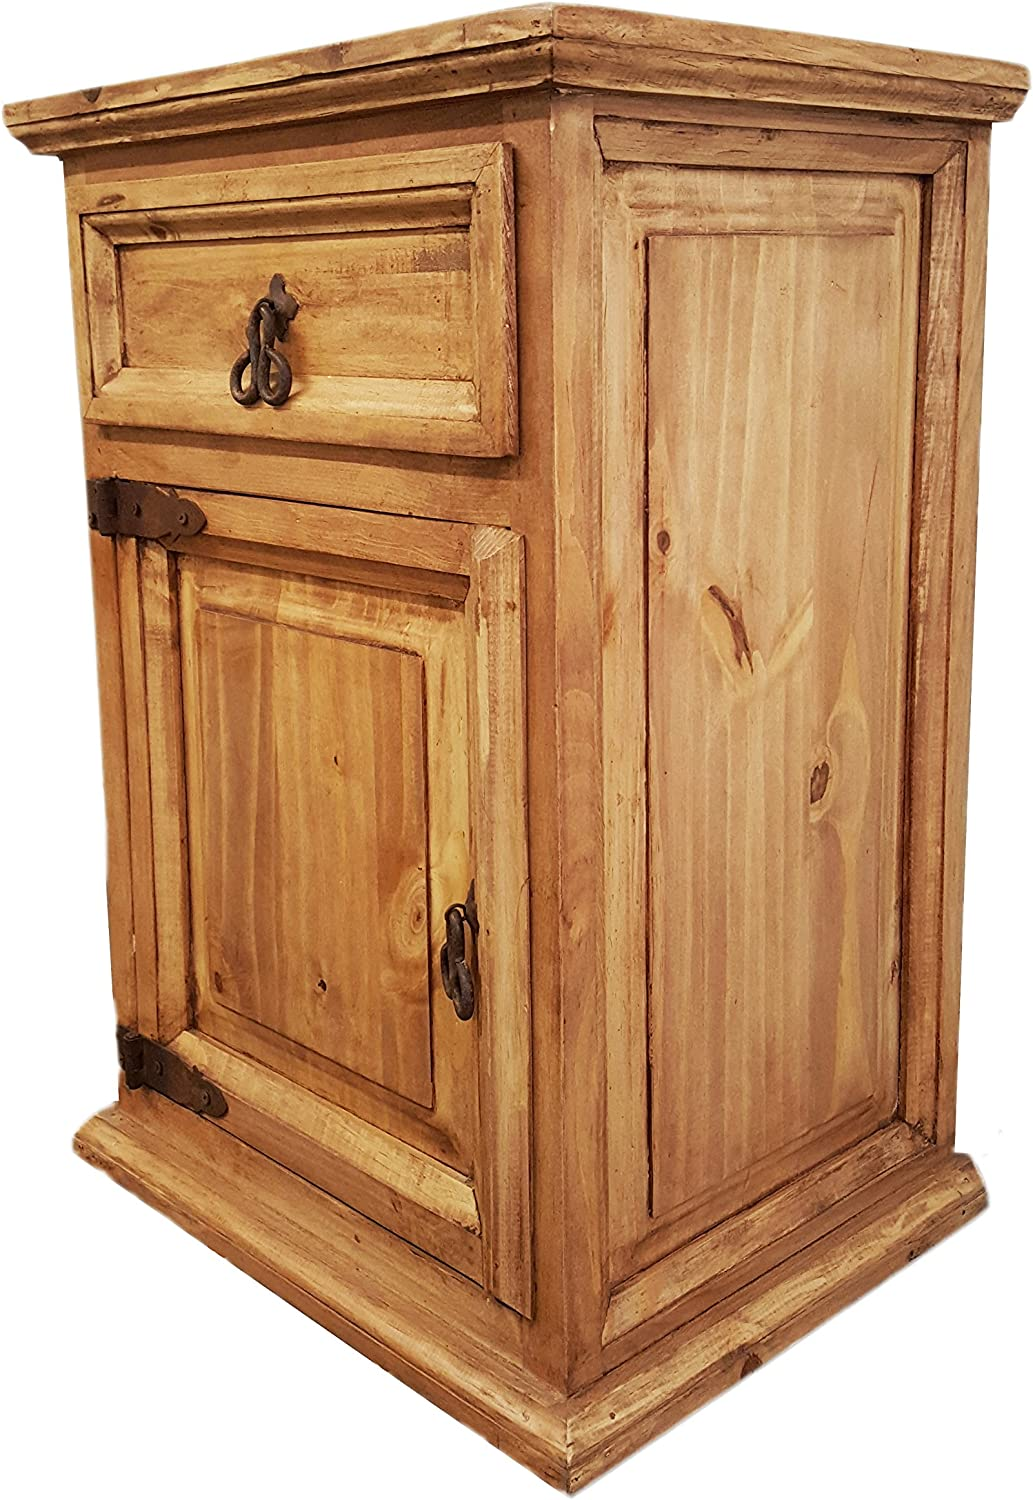 Decorative York Town Night Stand with Drawers Treasure Chest Trunk